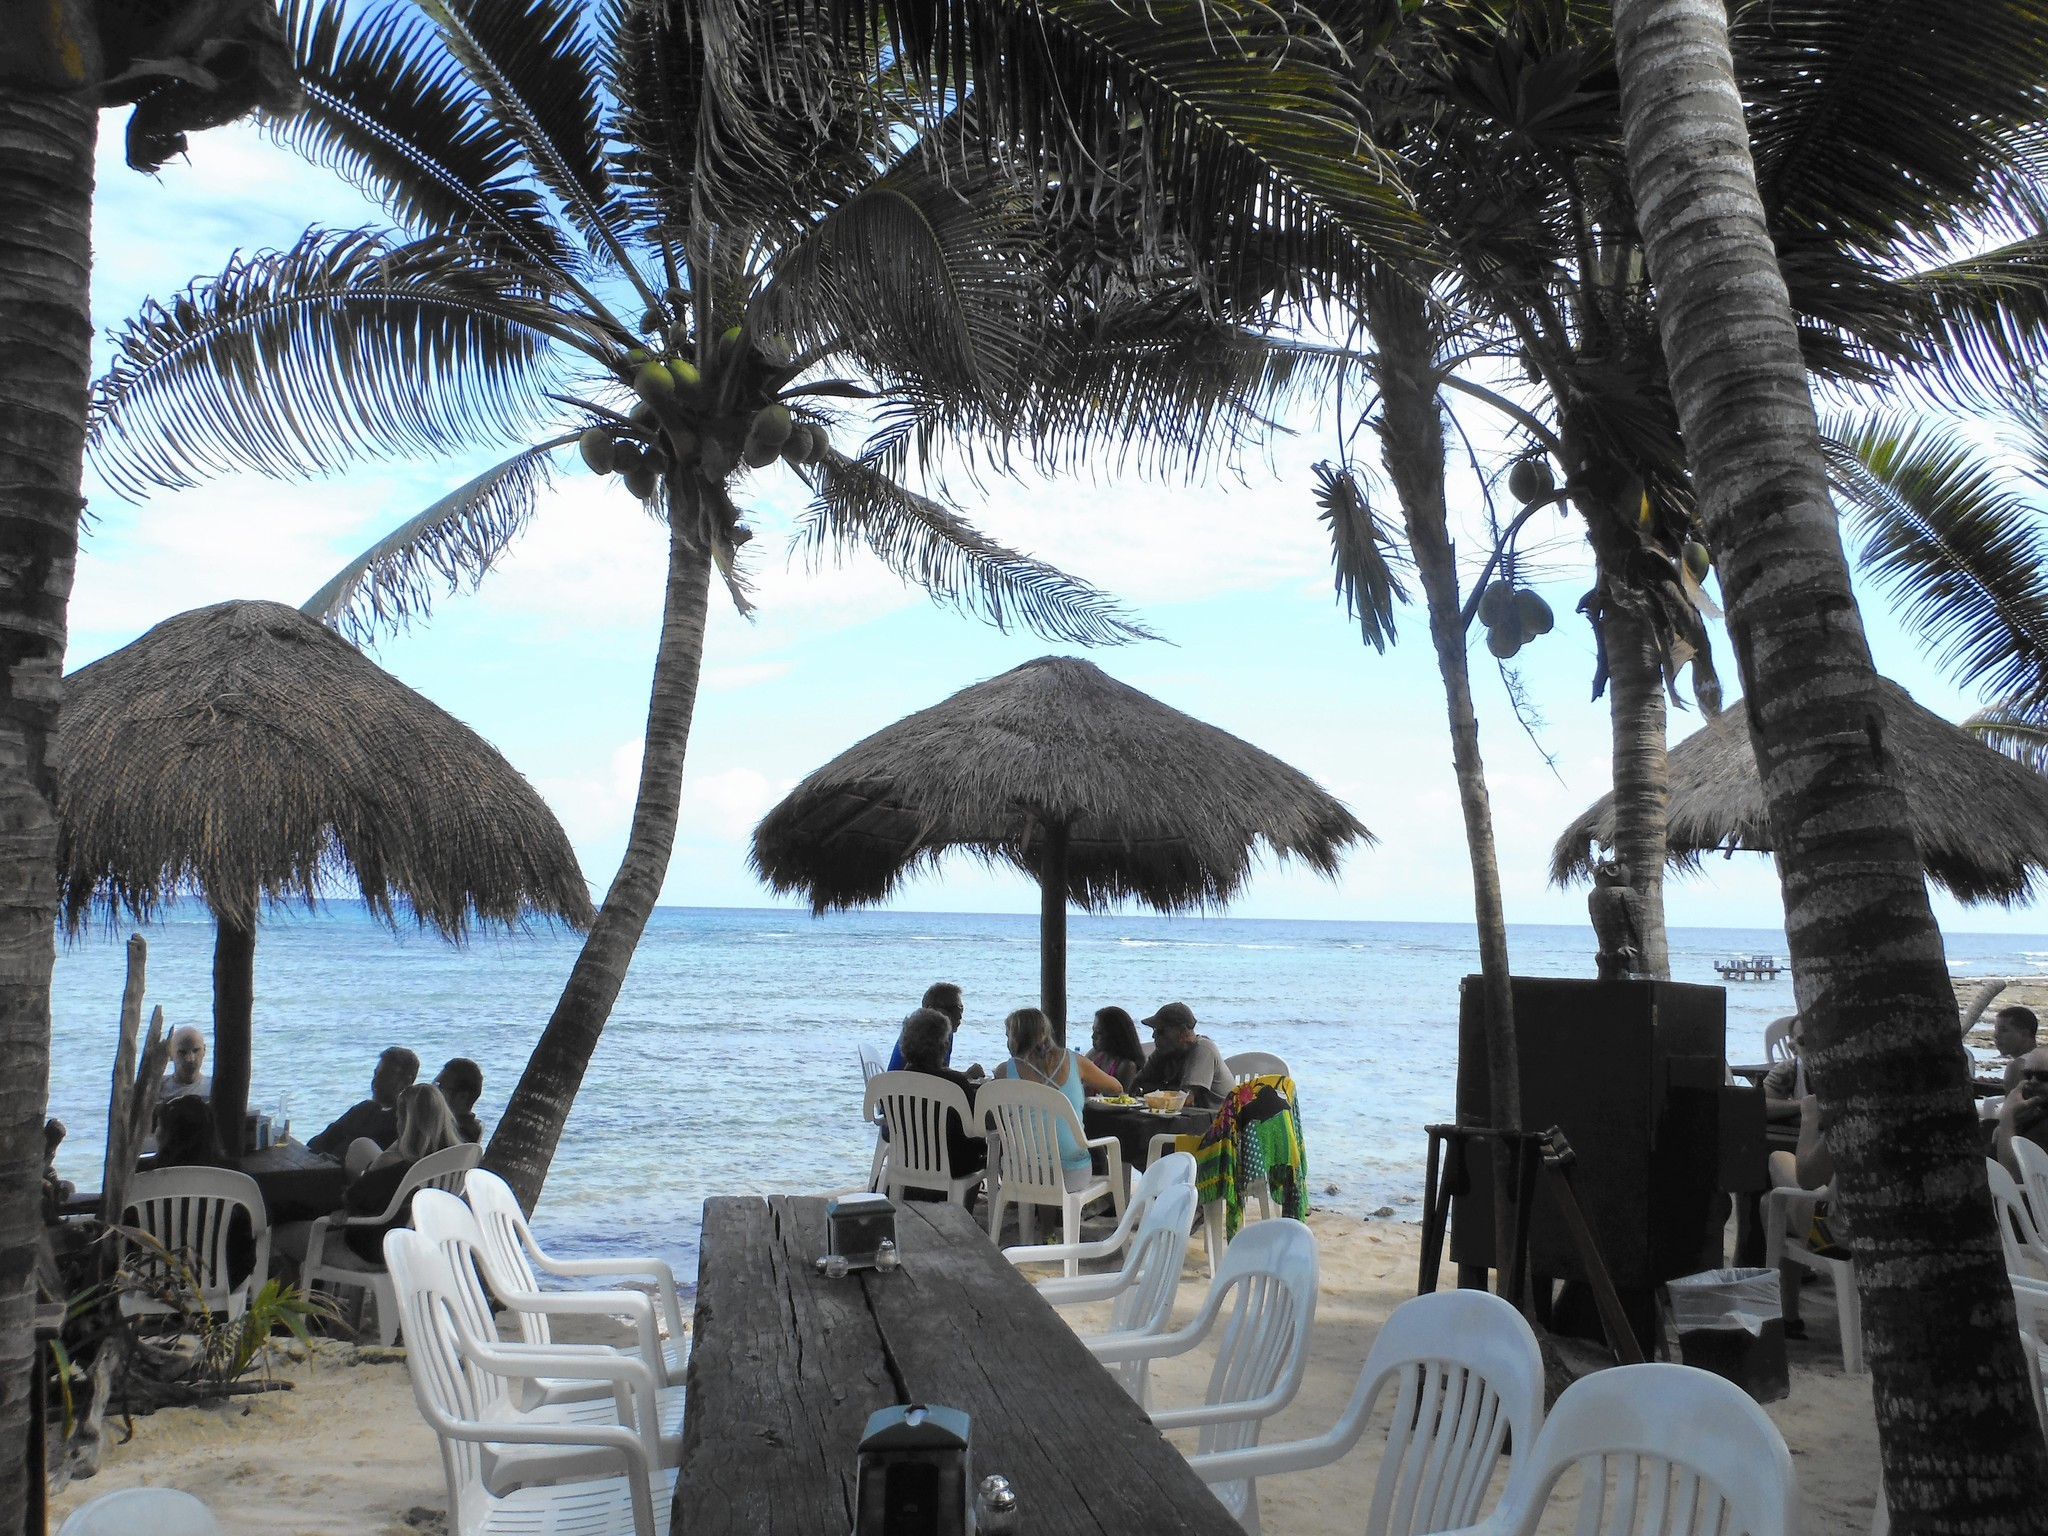 Touring Tulum, the tranquil side of Riviera Maya